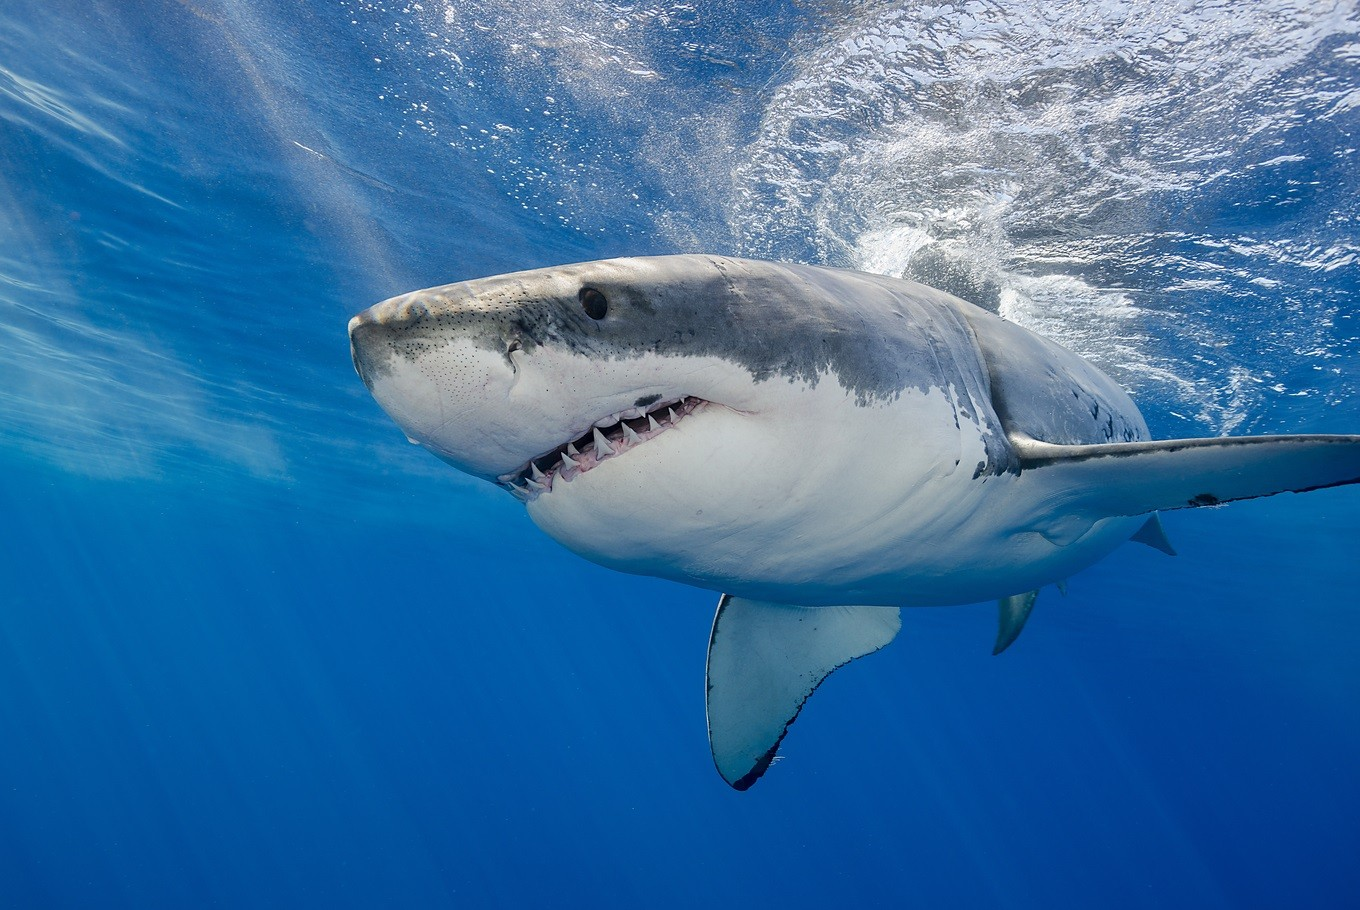 This is why you won't find great white sharks in aquariums